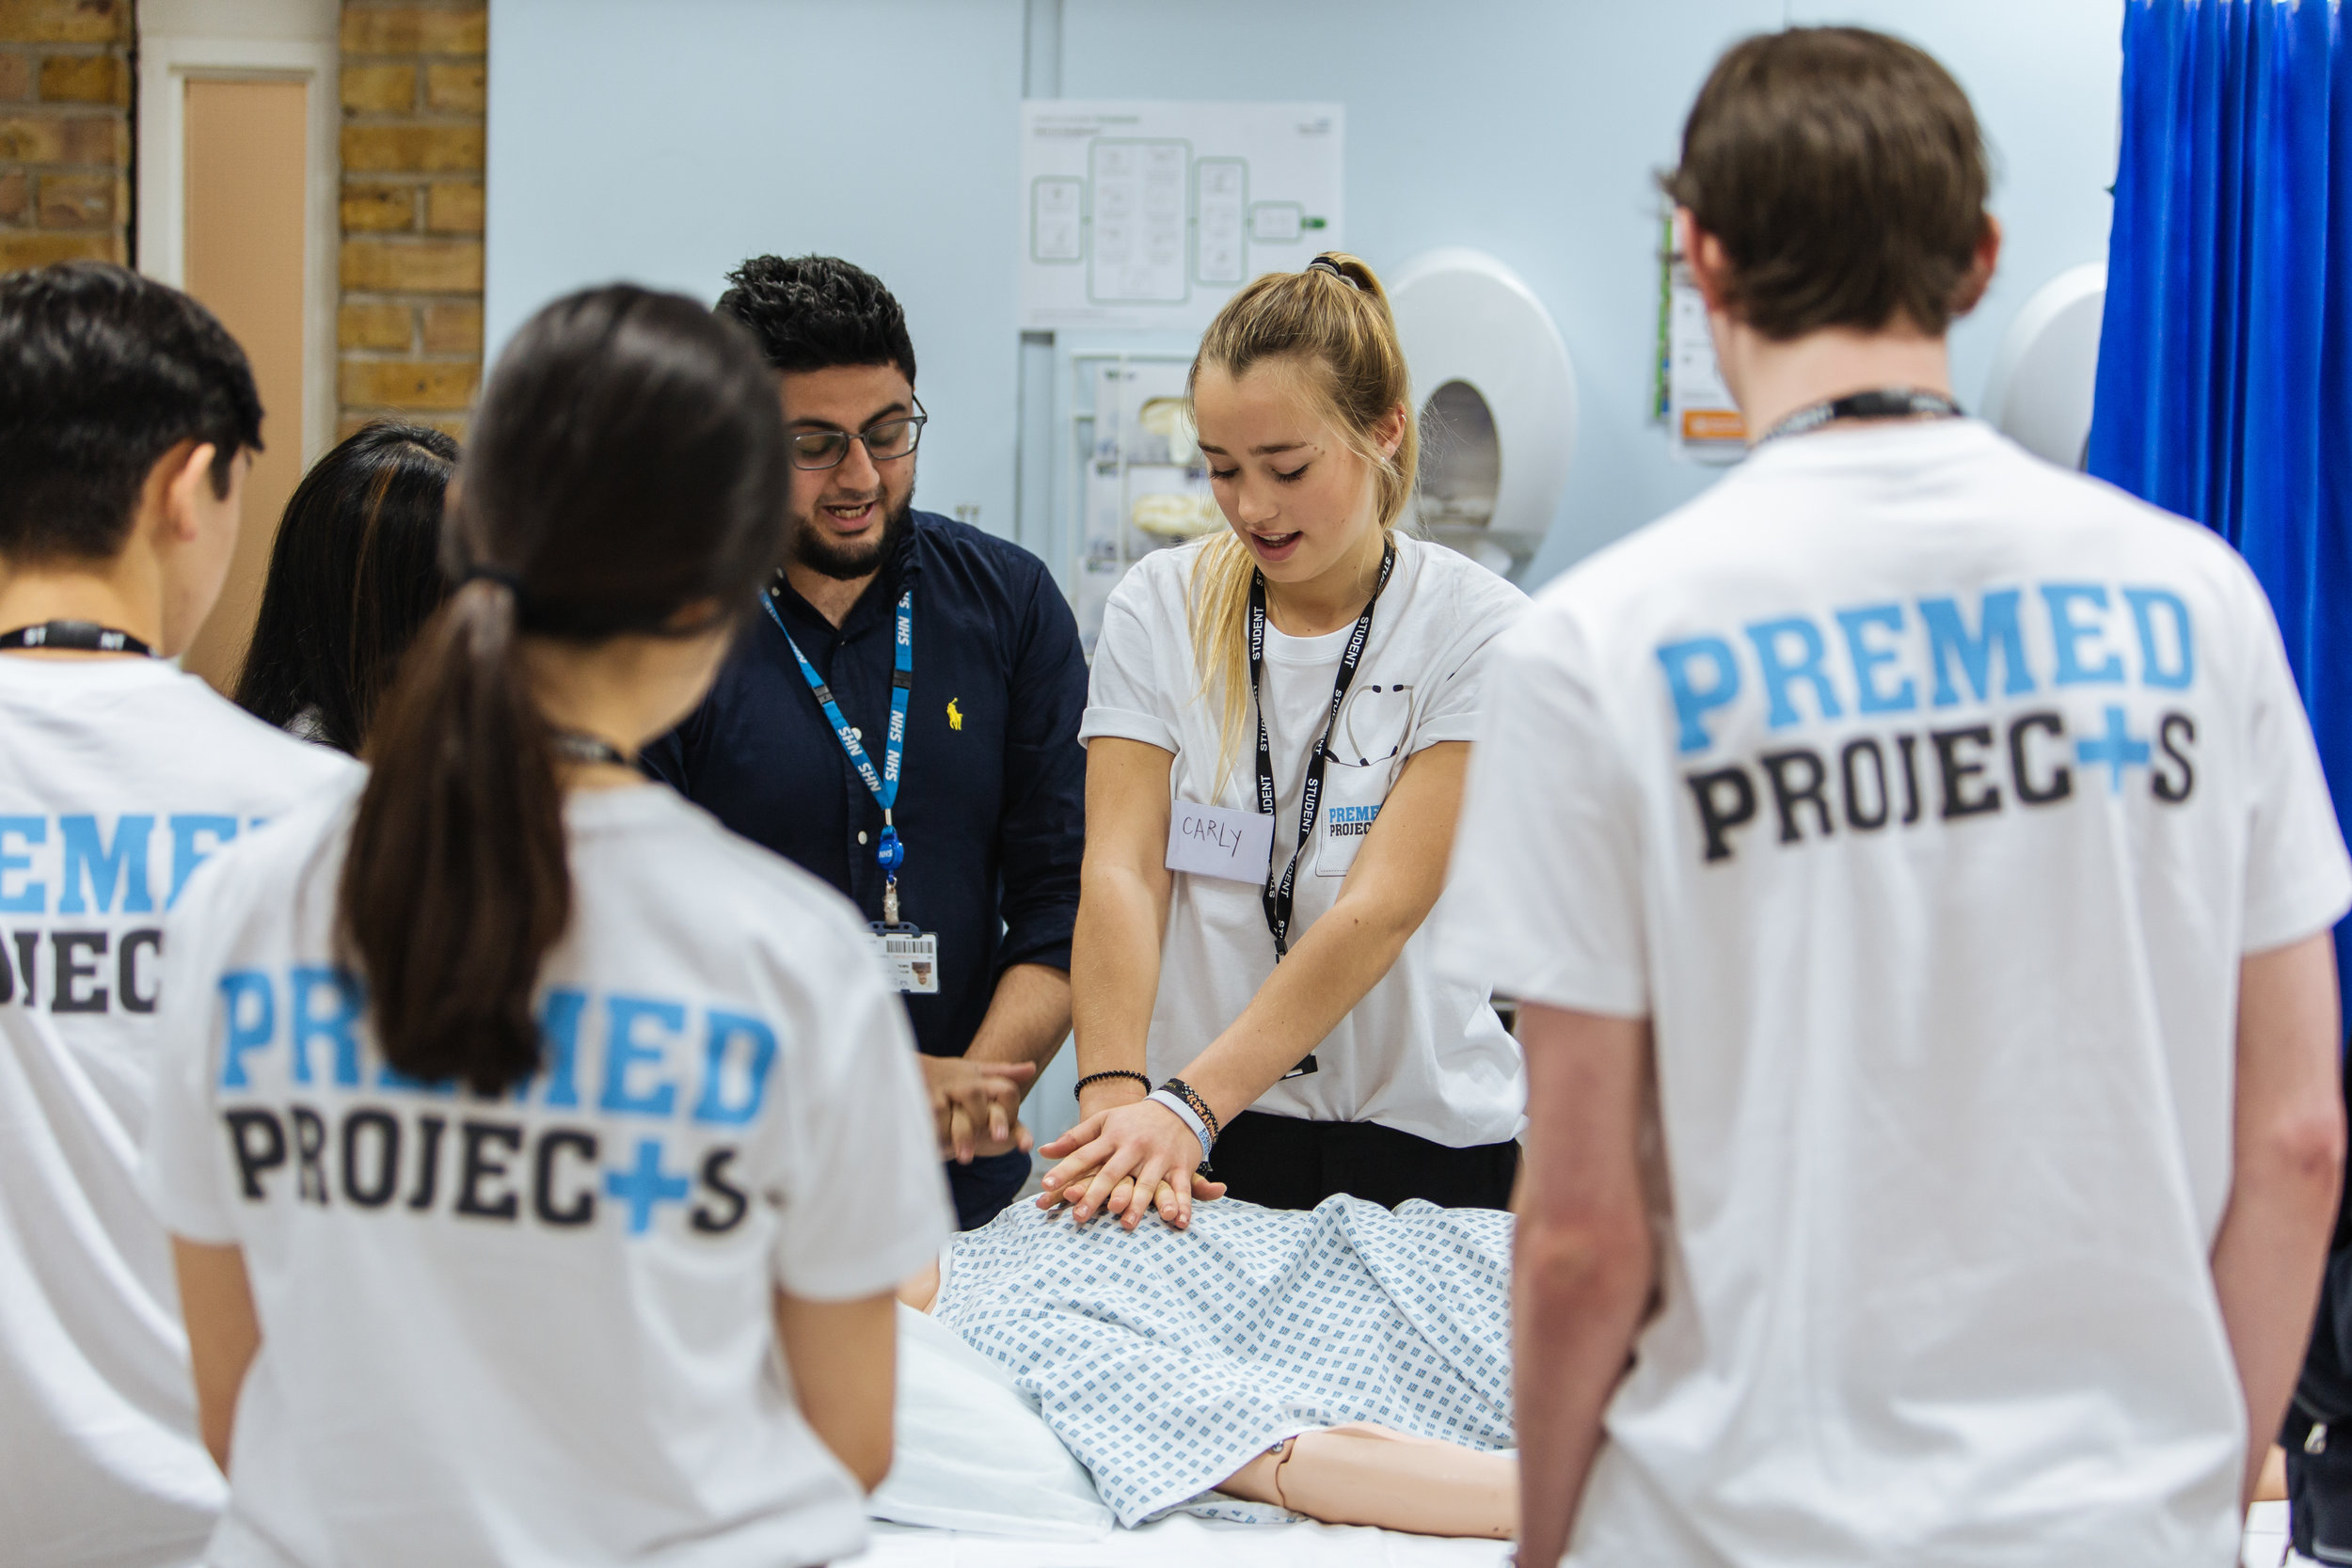 Nursing Work Experience - Hospital Work Experience for students interested in nursing careers.